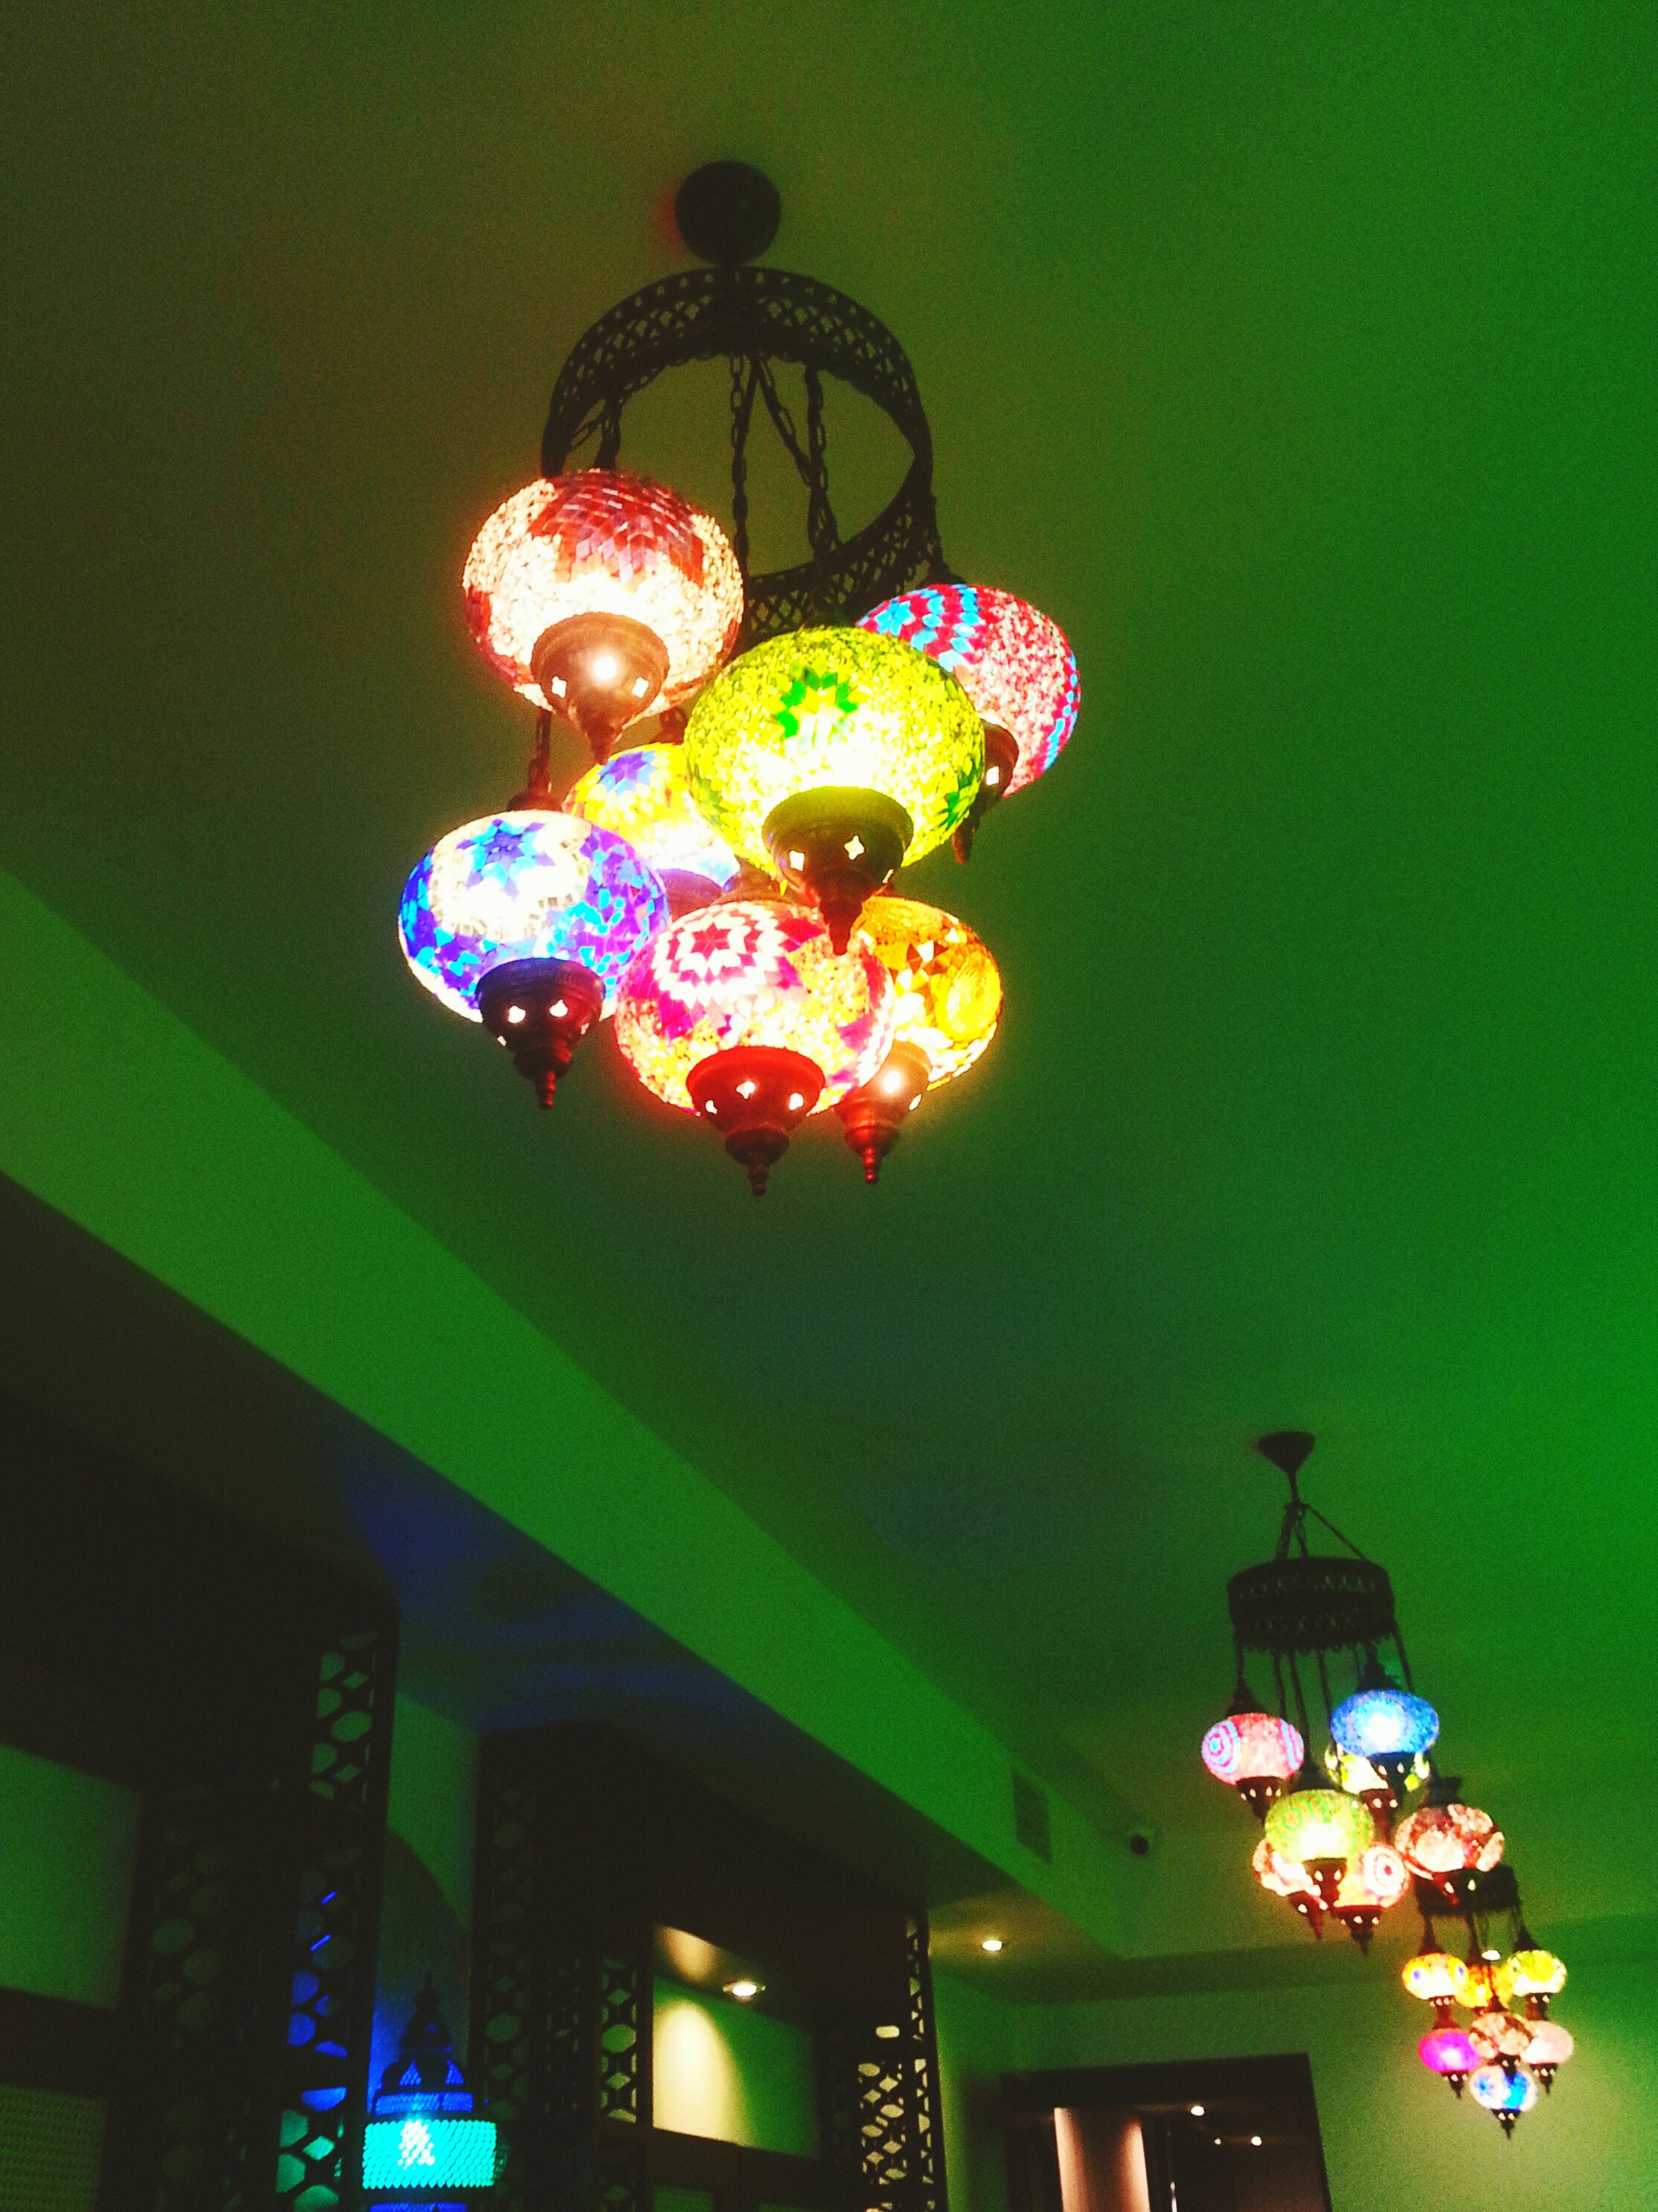 illuminated, indoors, lighting equipment, hanging, decoration, multi colored, ceiling, low angle view, celebration, electric lamp, decor, christmas decoration, night, lantern, electric light, christmas, electricity, tradition, lamp, home interior